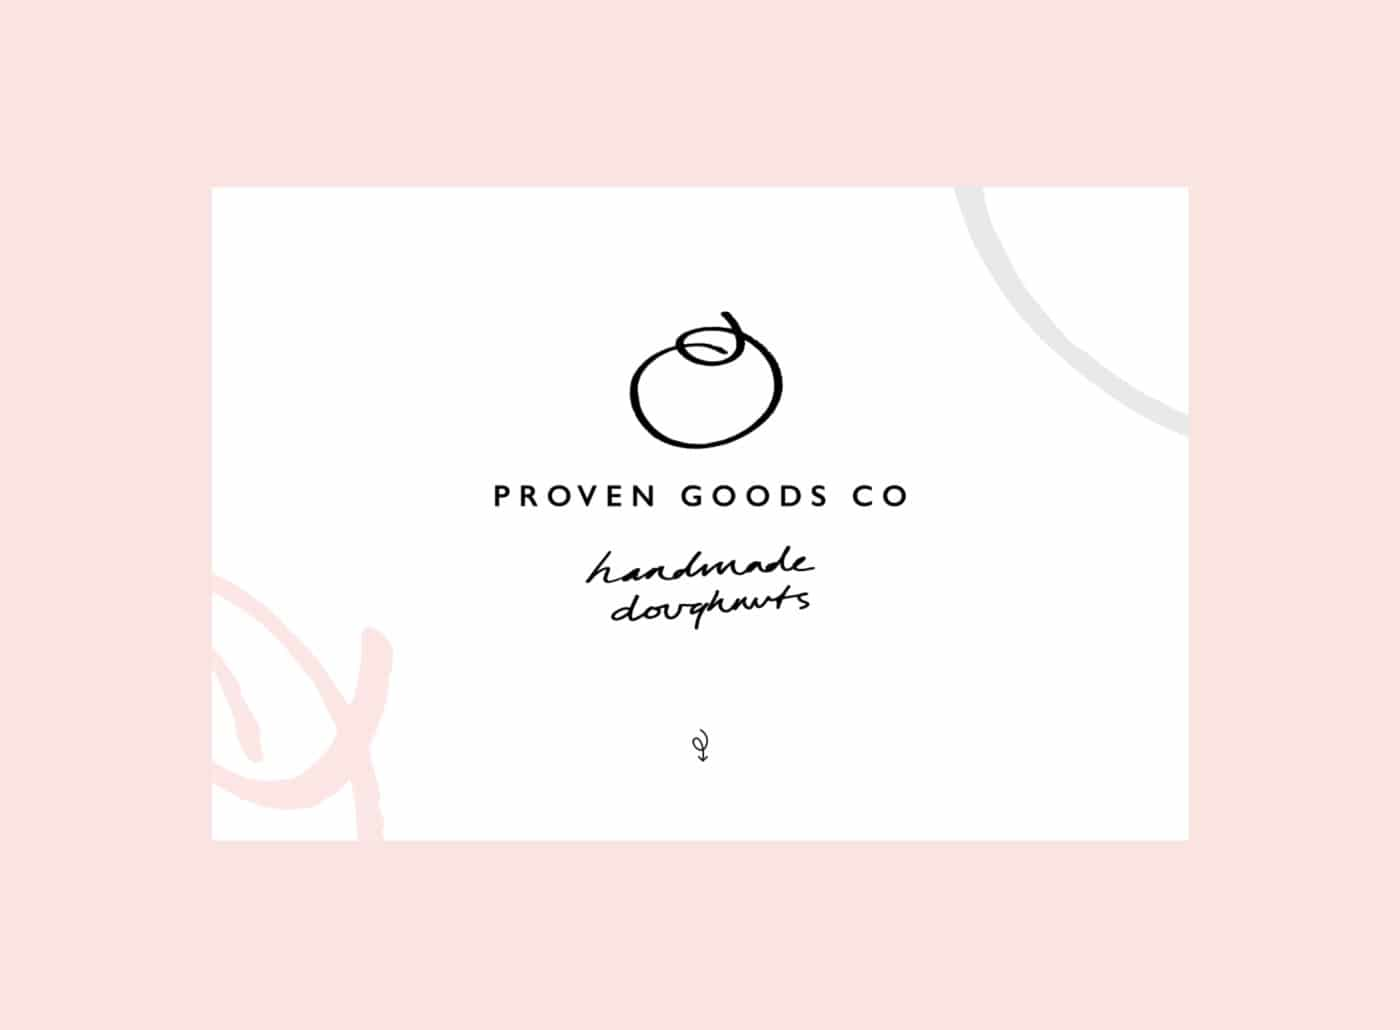 The Proven Goods Co website